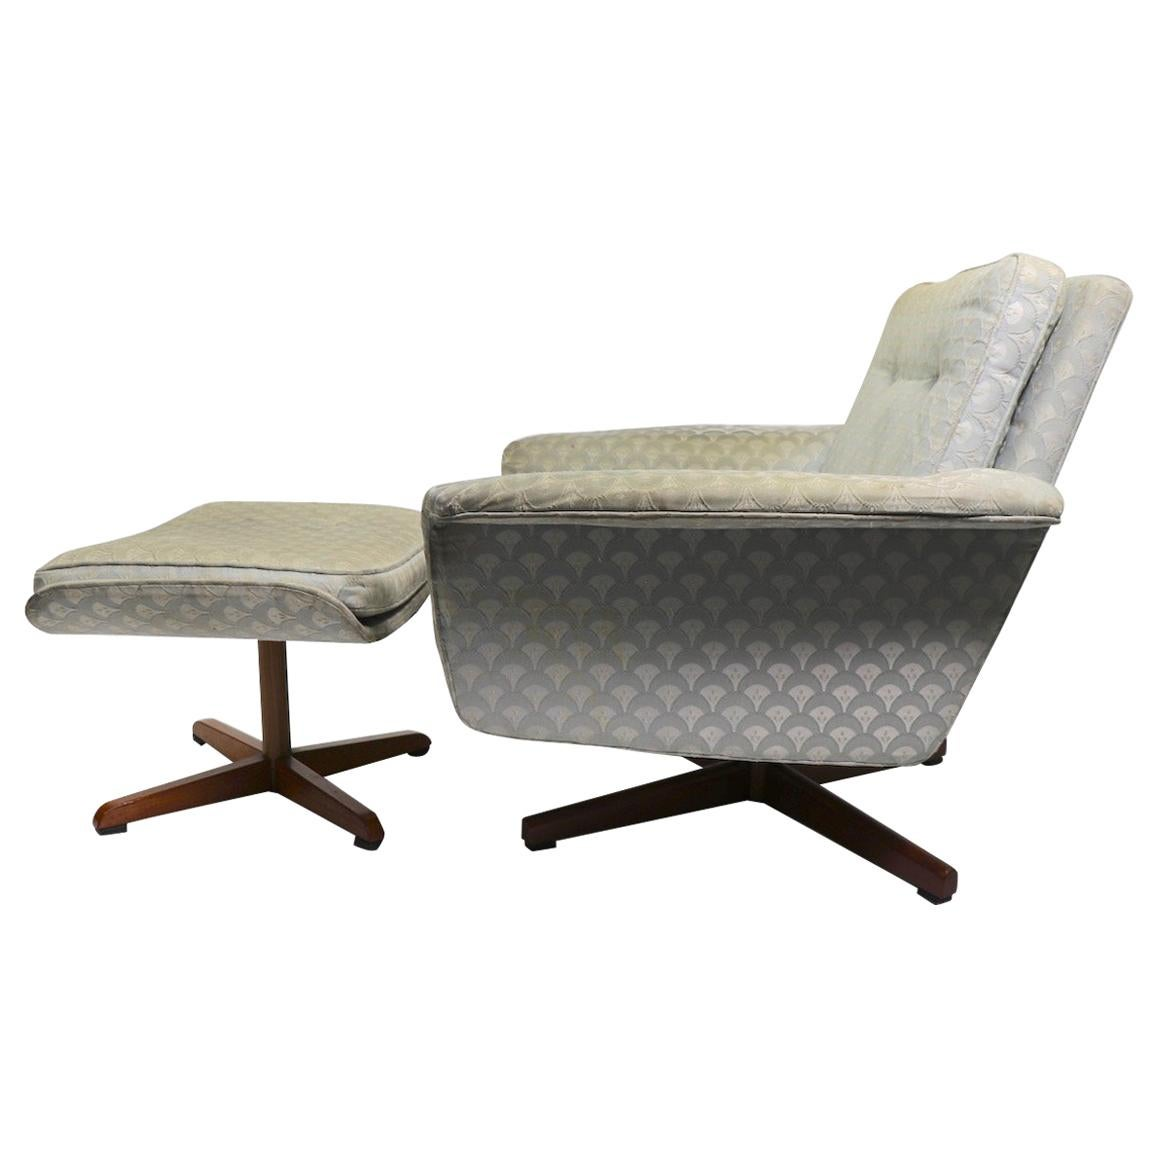 Danish Modern Swivel Chair and Ottoman Attributed to DUX